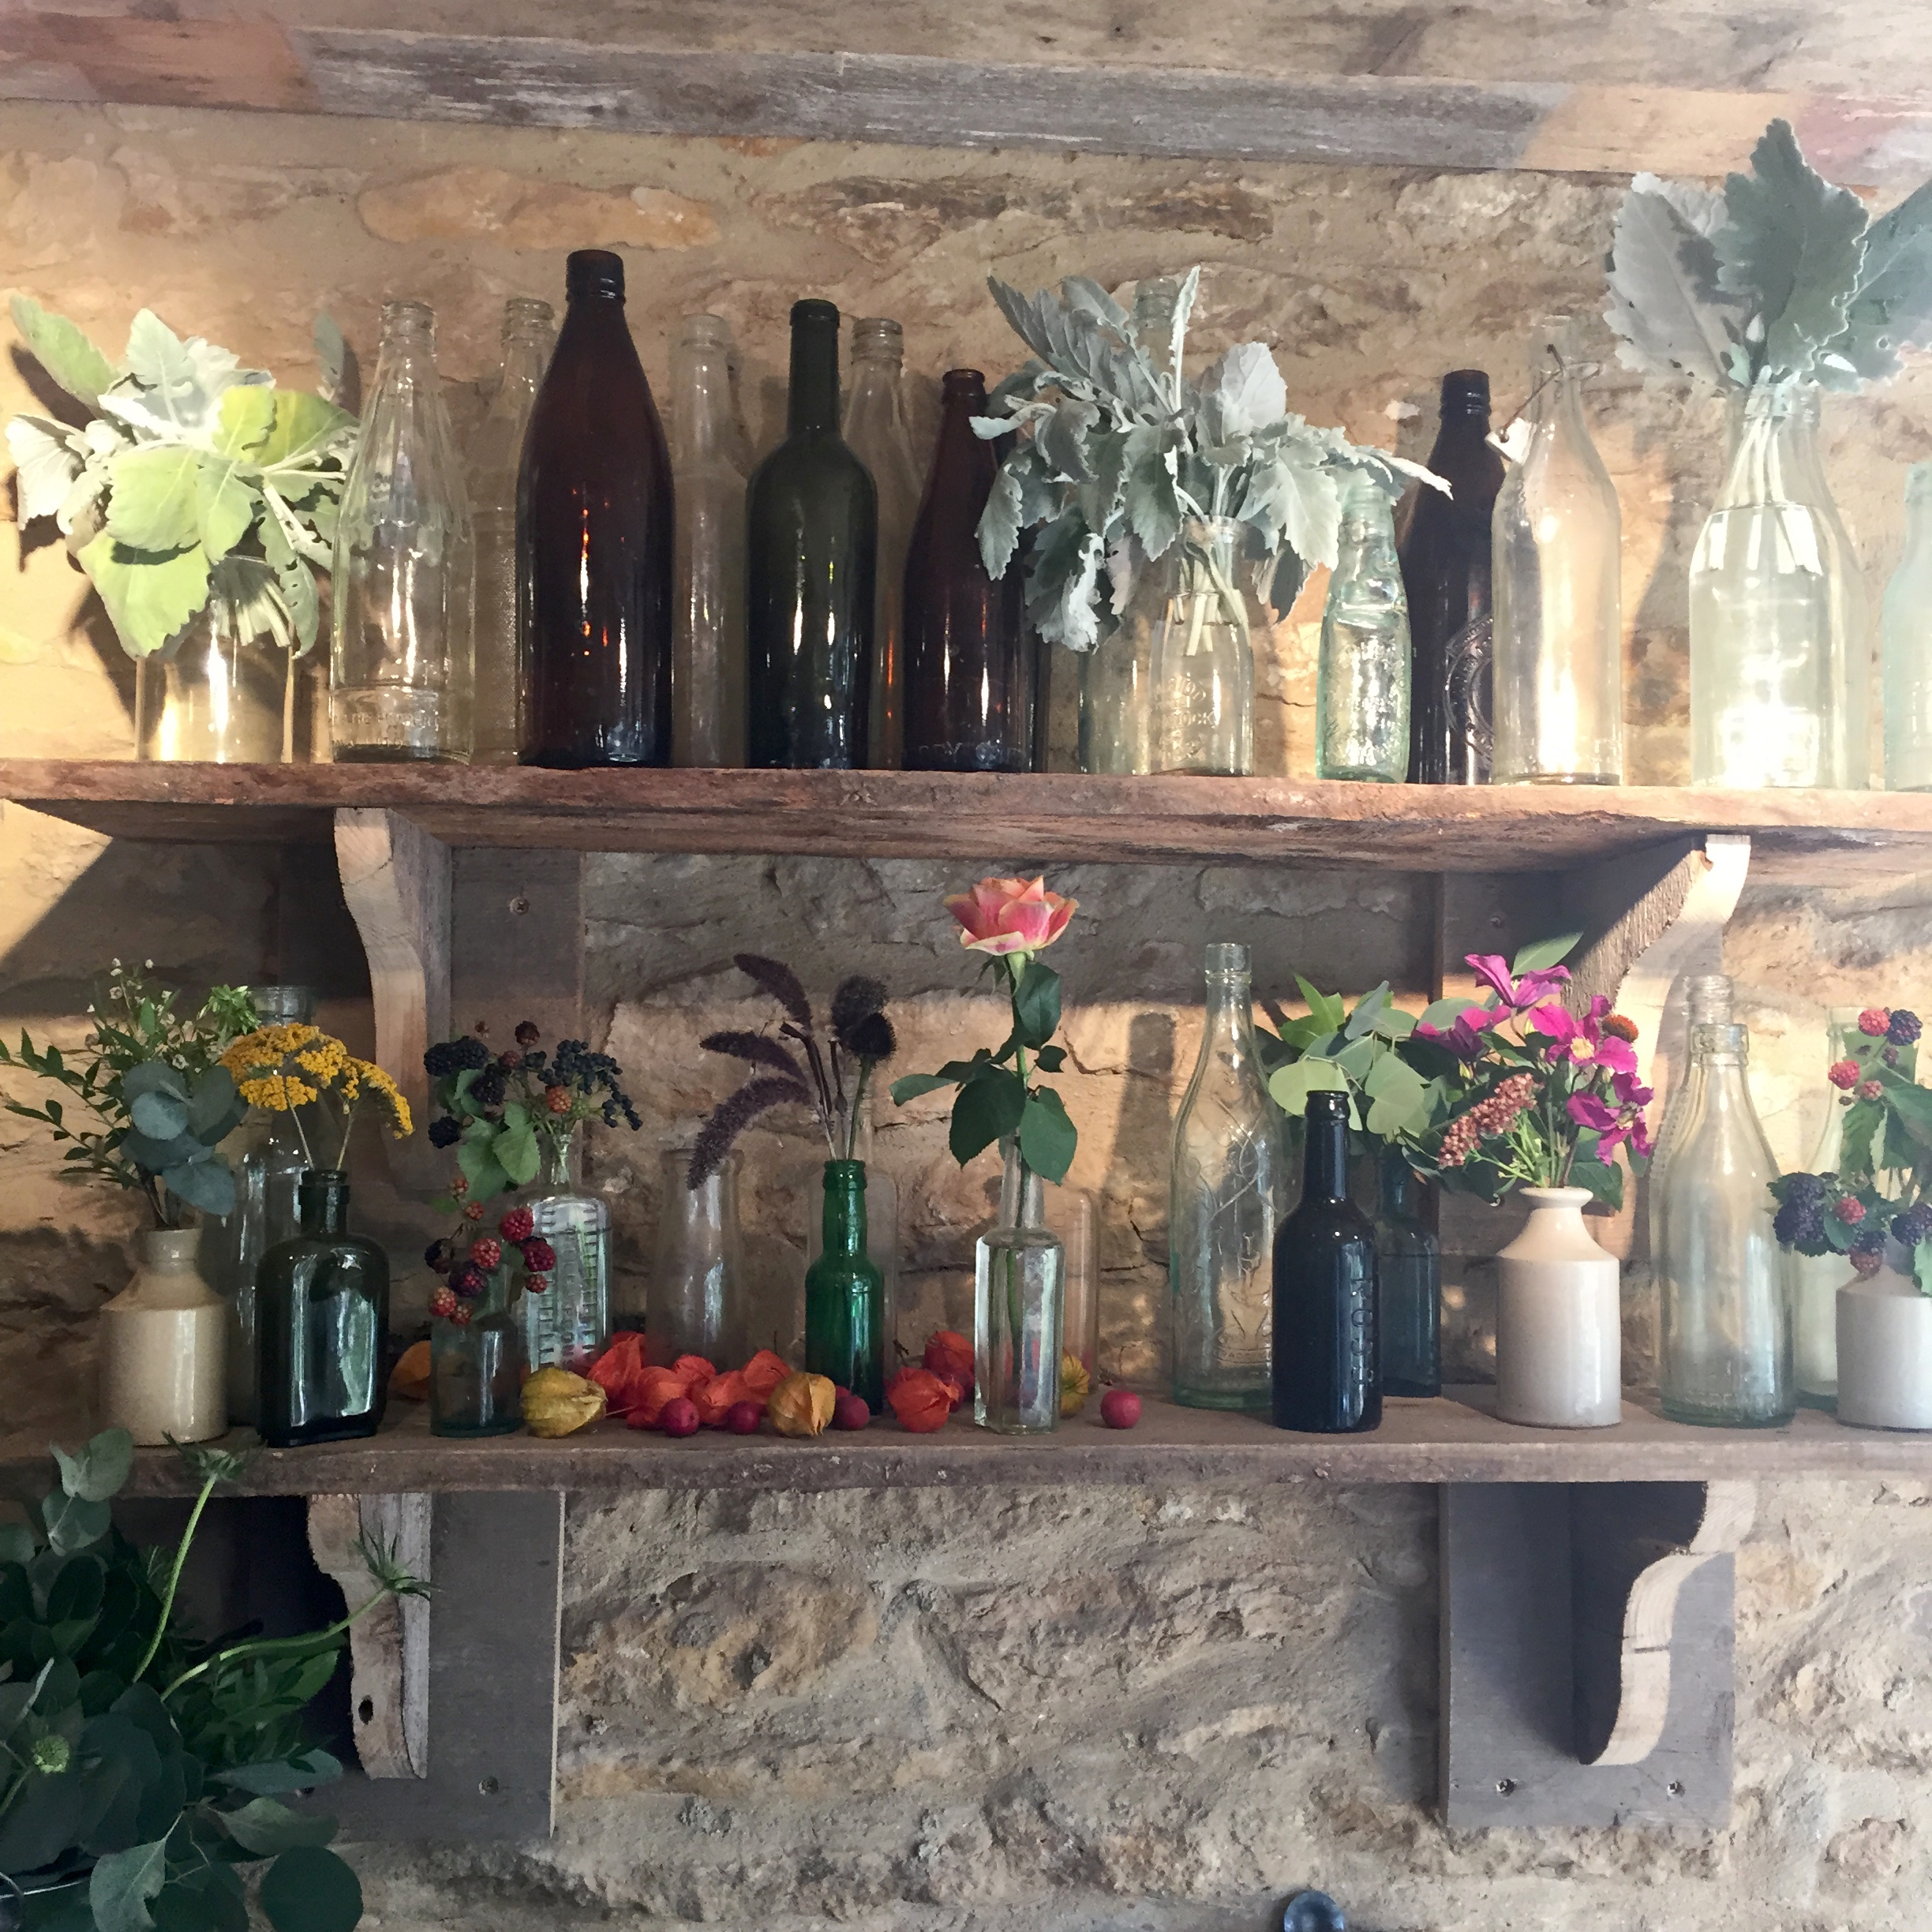 Vintage Bottles and Stems